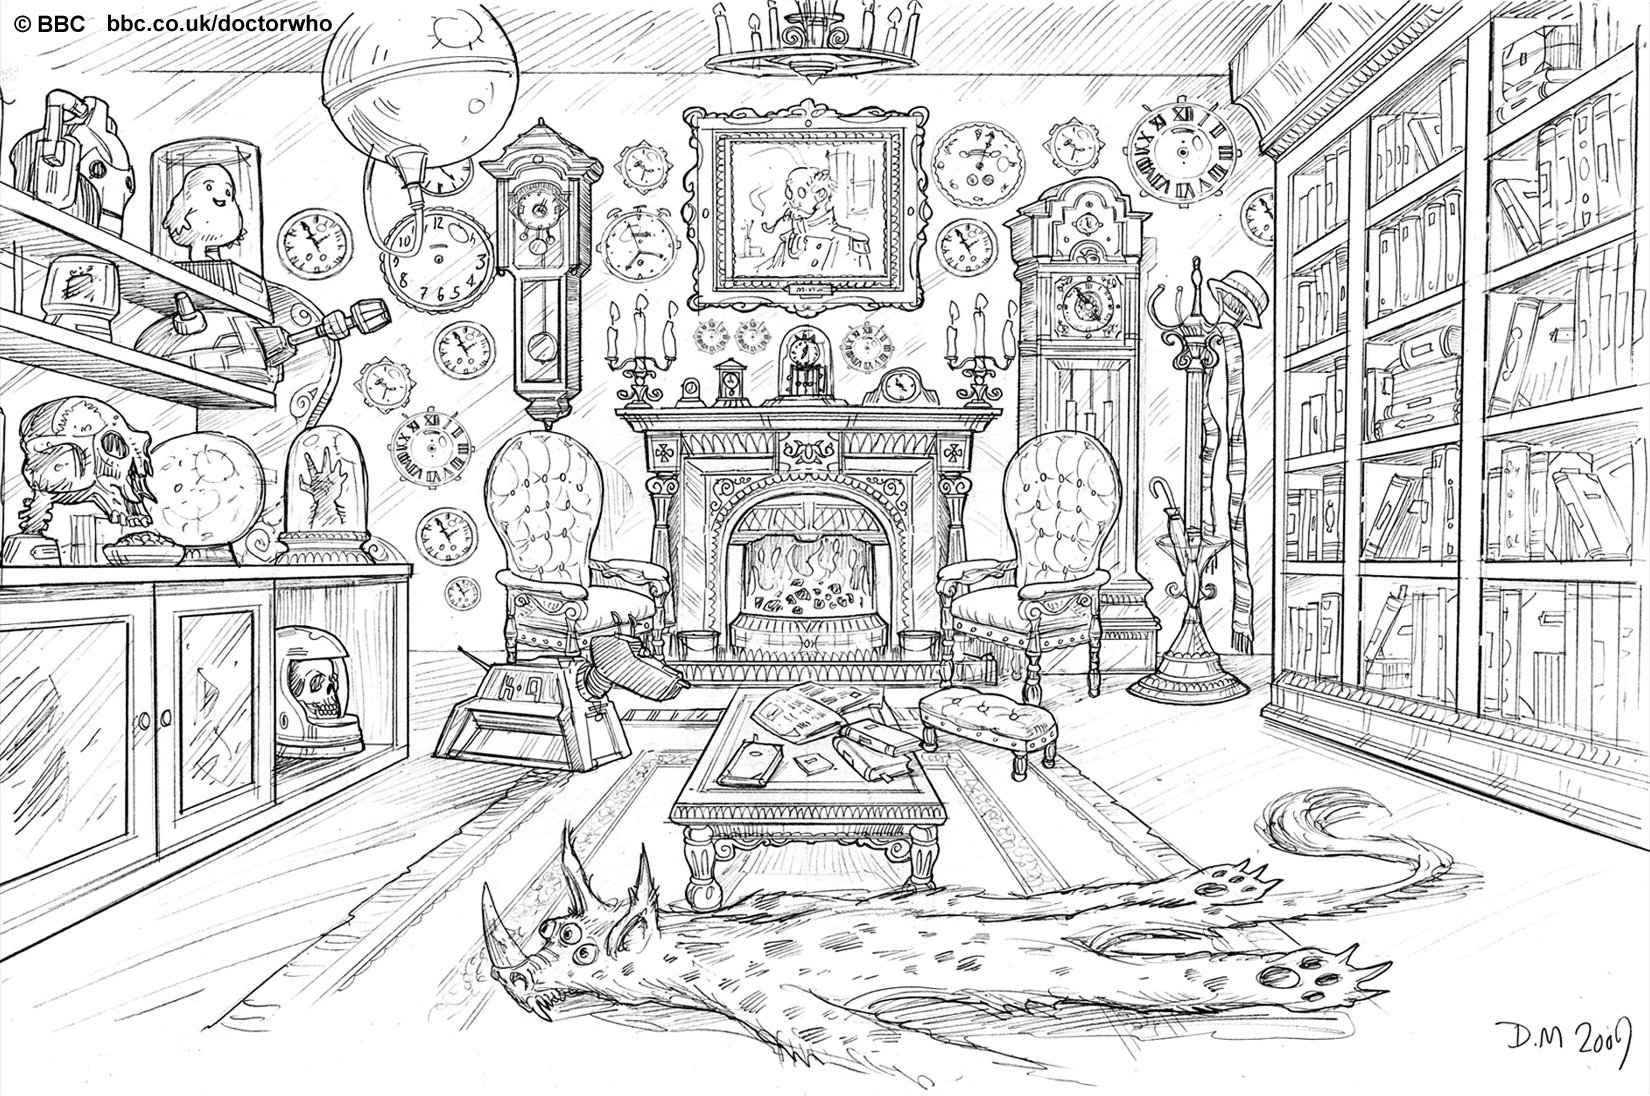 http://static.bbc.co.uk/images/ic/qe/crop/946x532//doctorwho/tag/episode_03/wallpapers/tardis_doctors_drawing_room_wallpaper_03.jpg